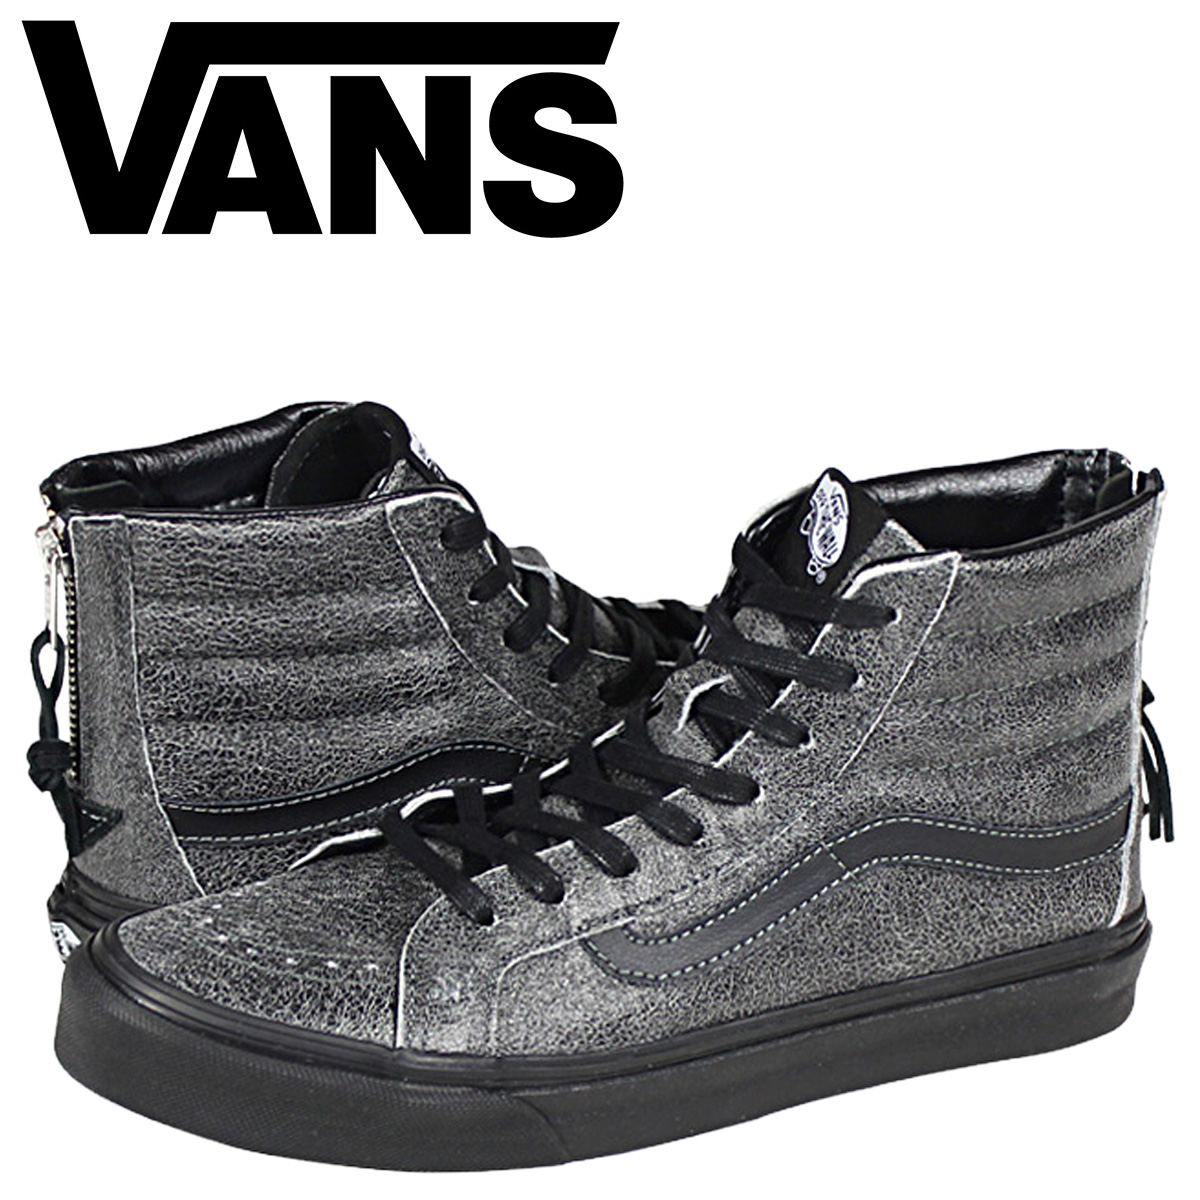 93cc8c31cacdd3 Vans VANS sneakers Lady s SK8-HI SLIM ZIP CRACKLE SUEDE VN-0XH8EPJ men  shoes black